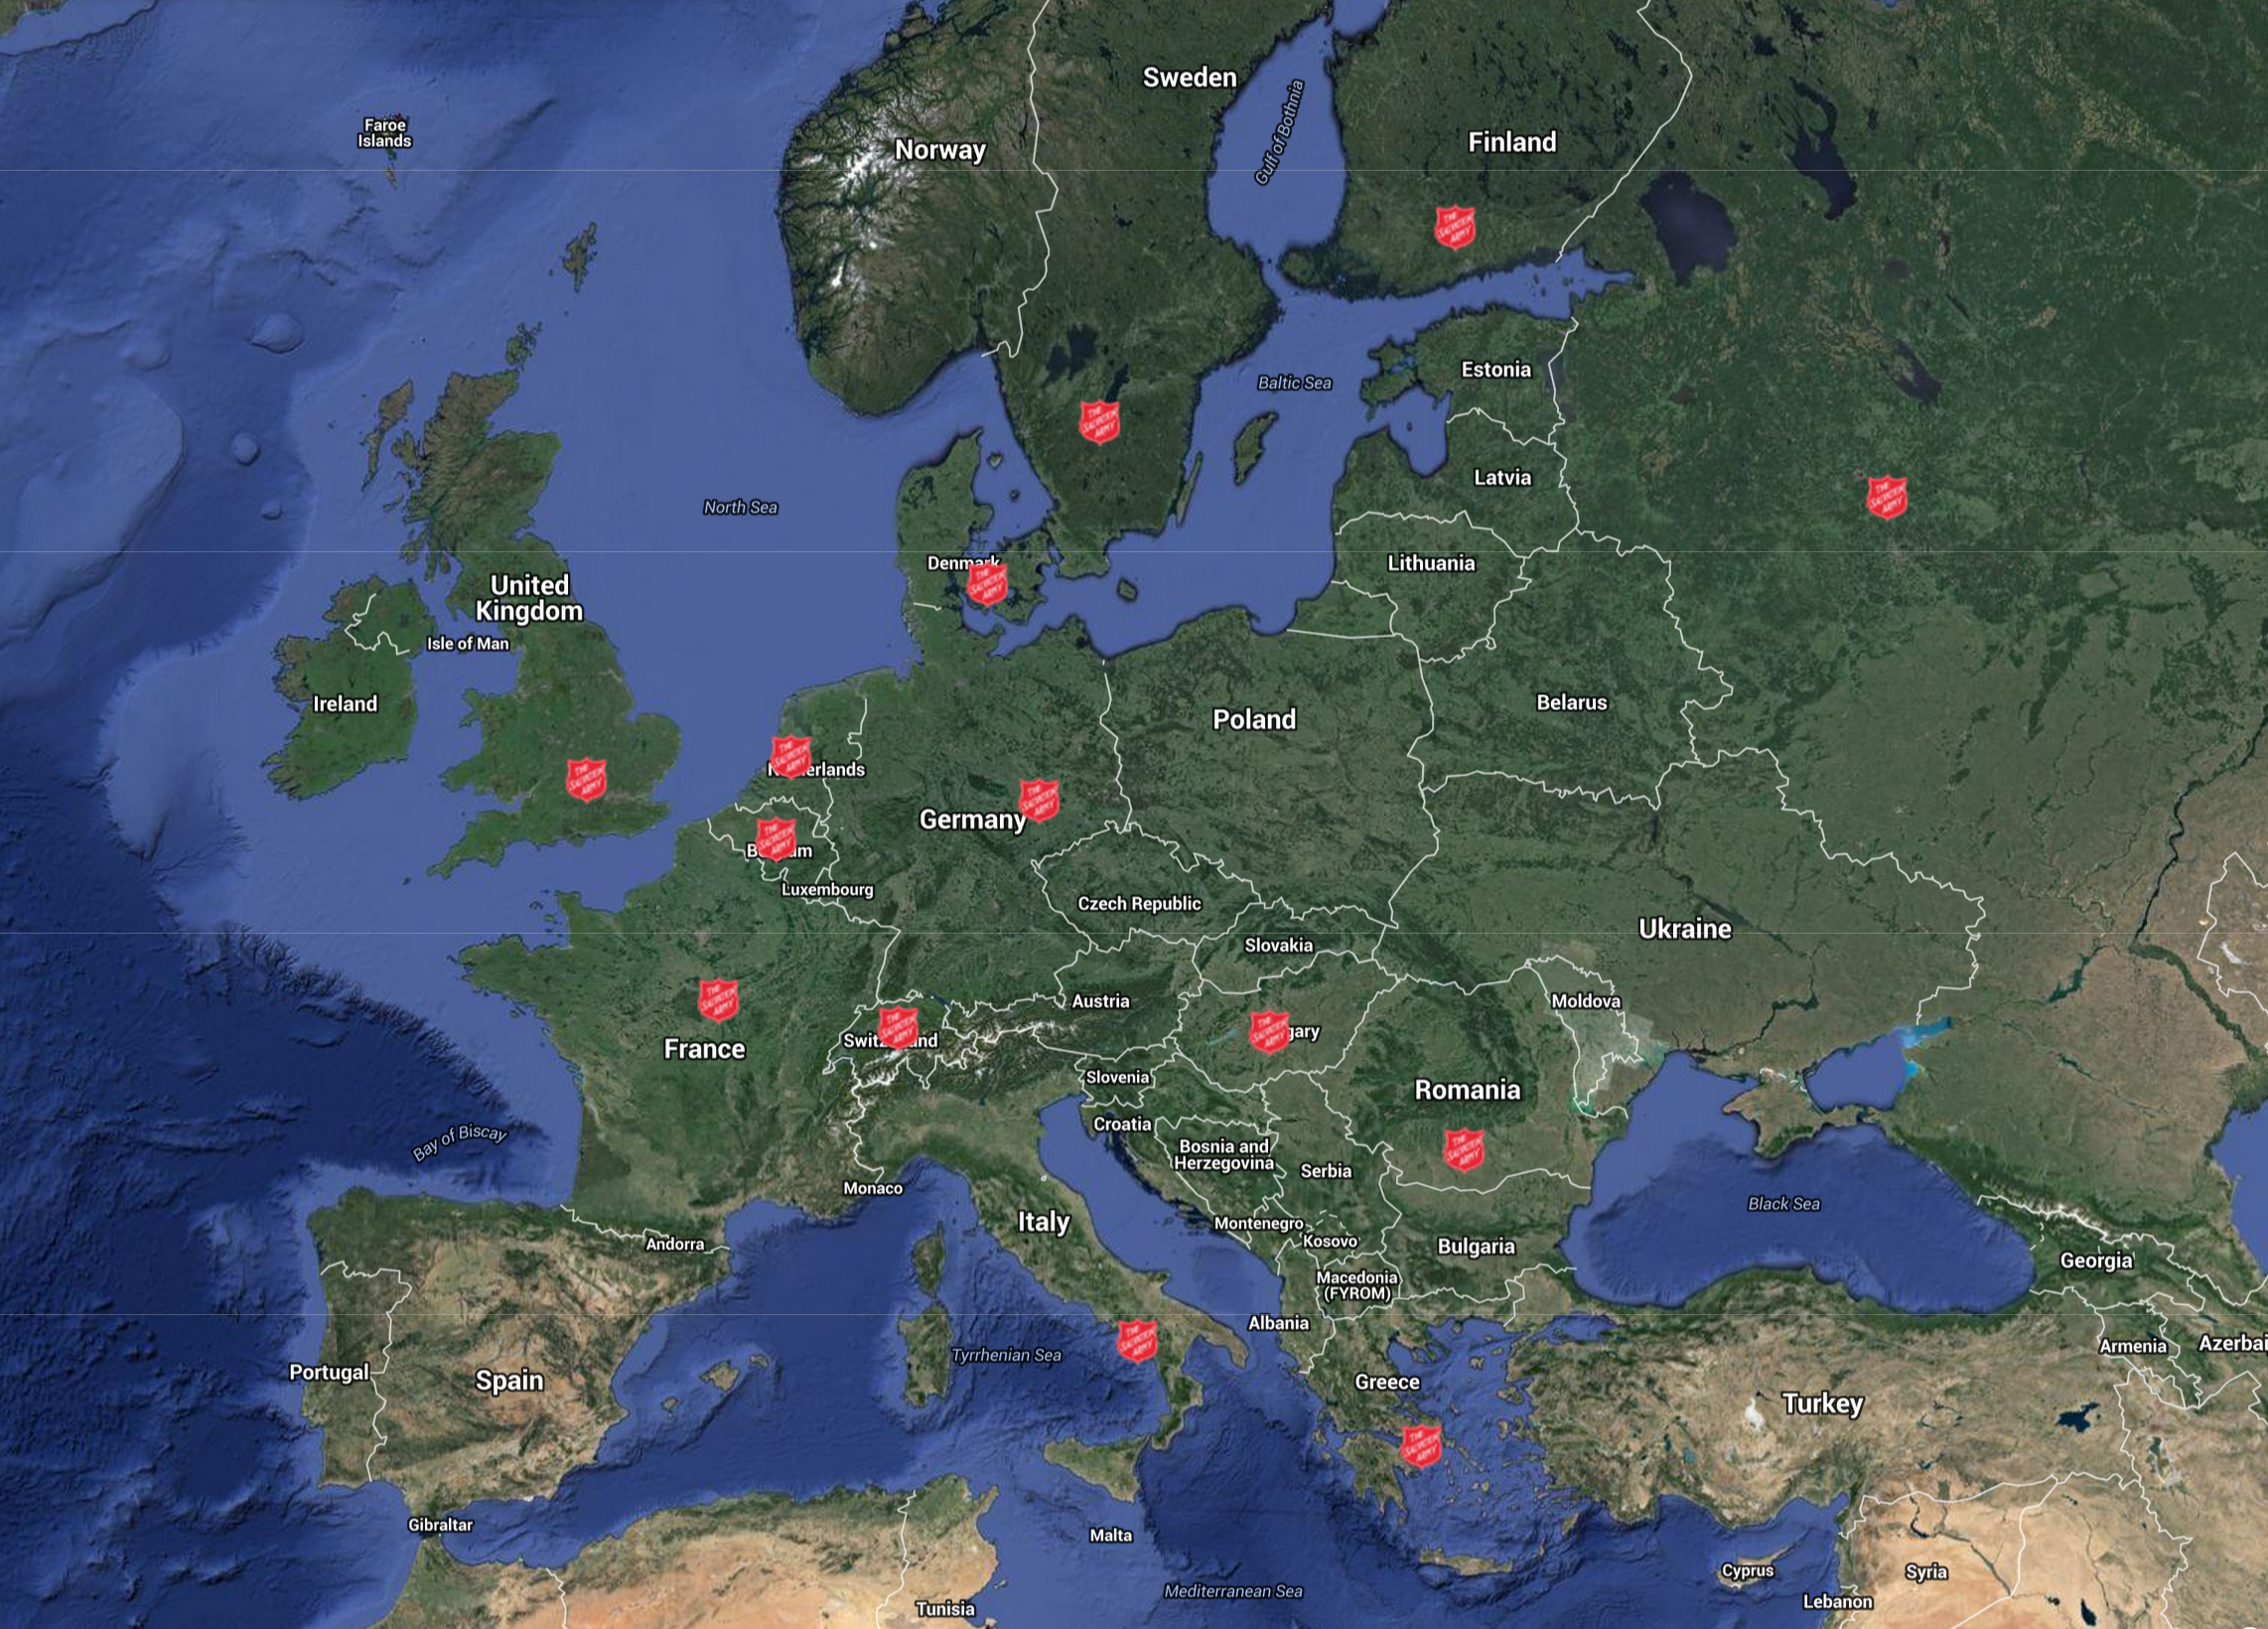 Map of Salvation Army refugee responses across Europe